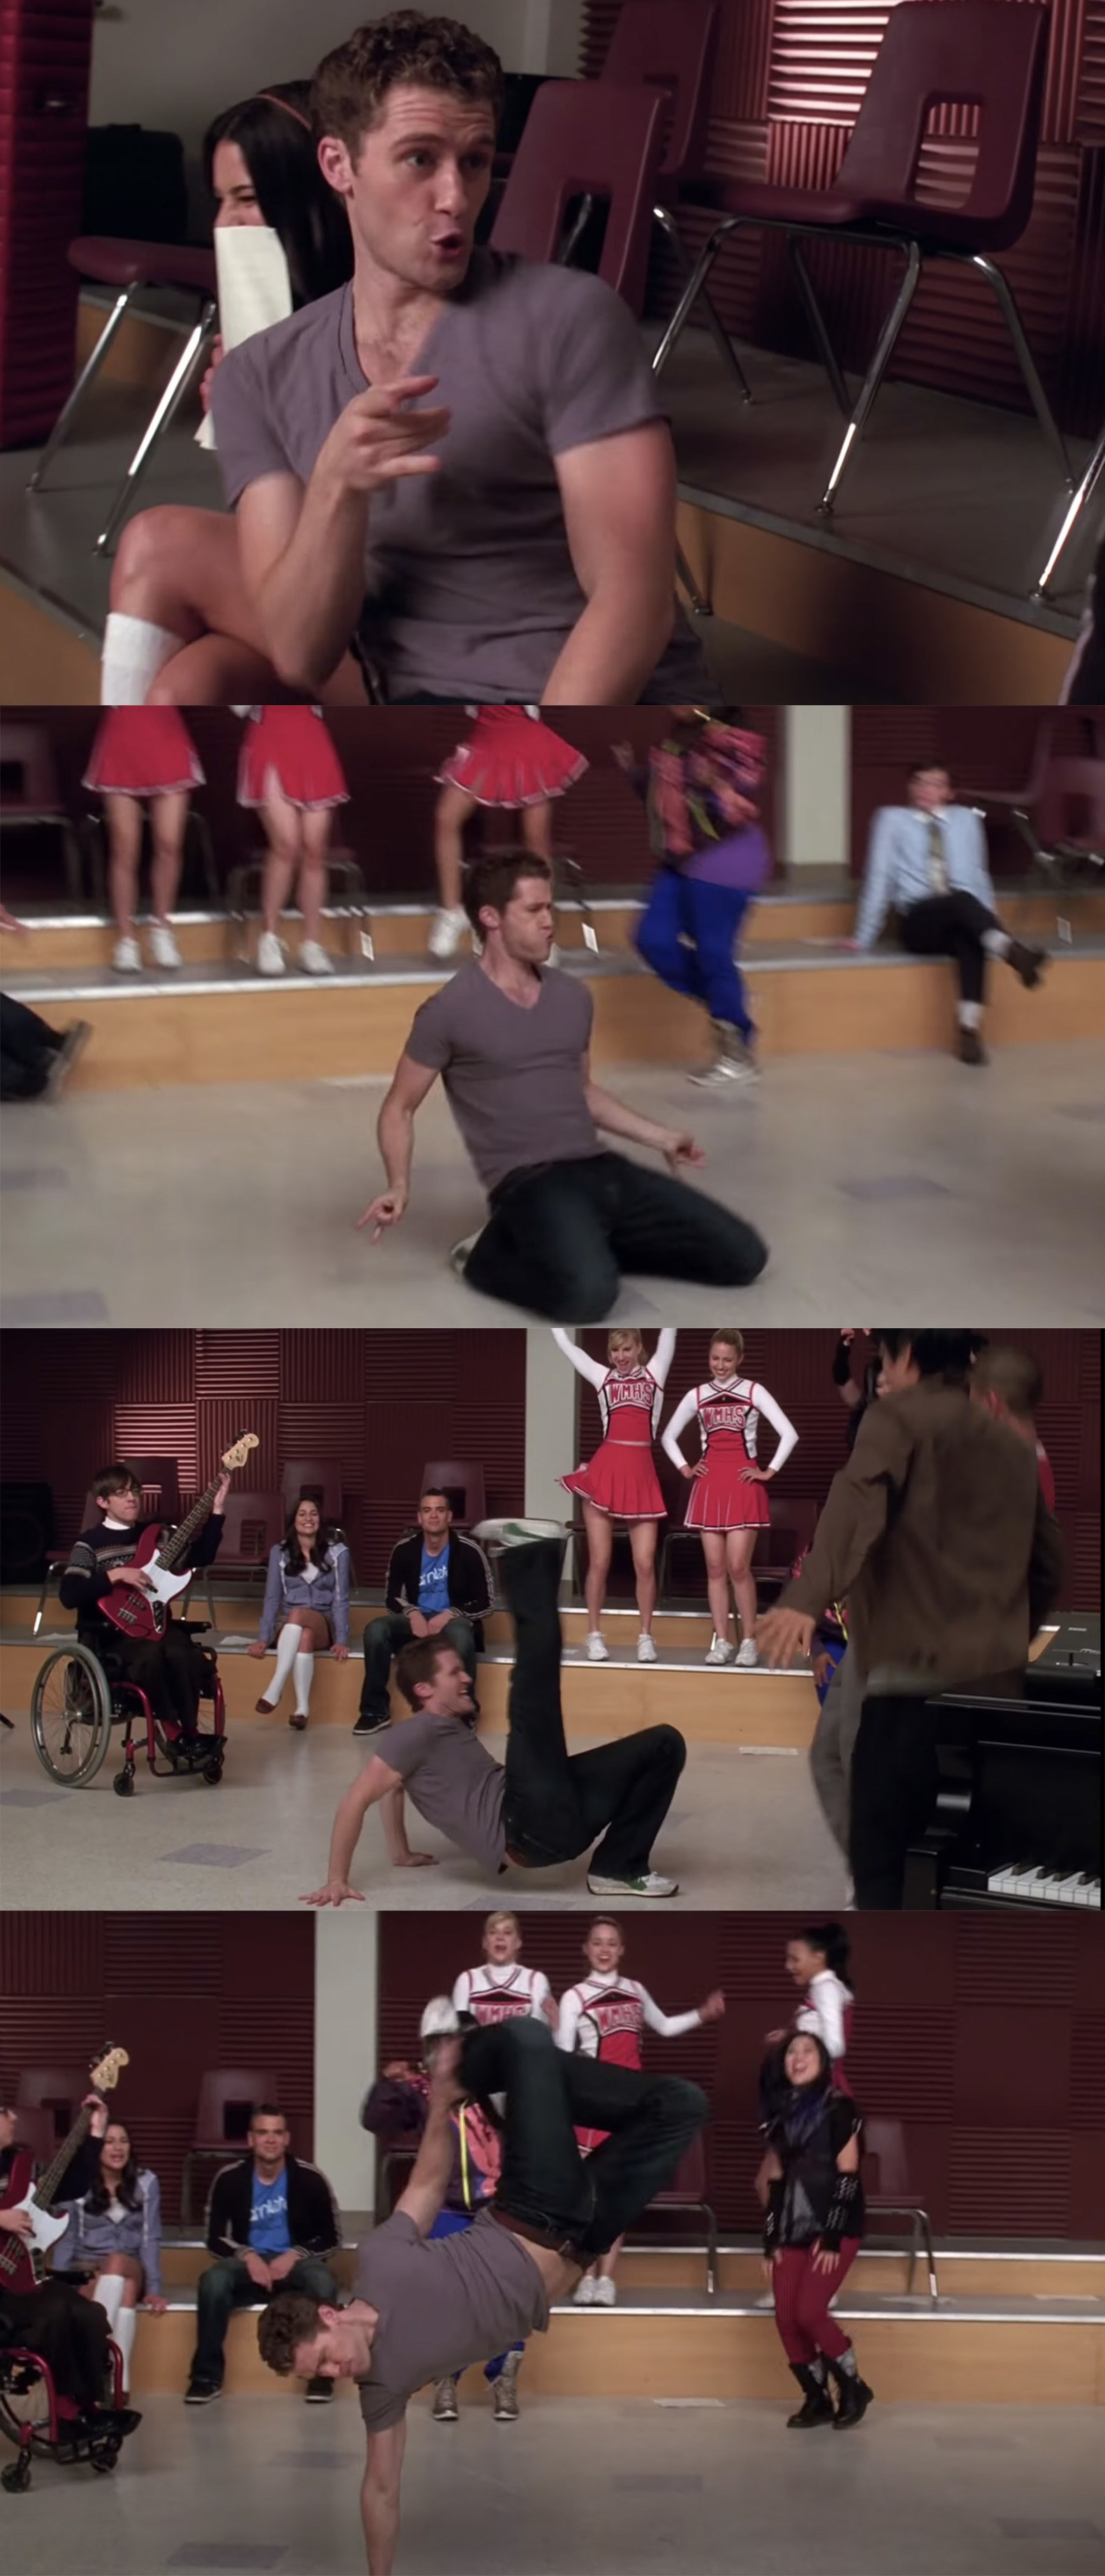 Mr. Schue dancing wildly and doing tricks. He balances on one hand while throwing his legs into the air.